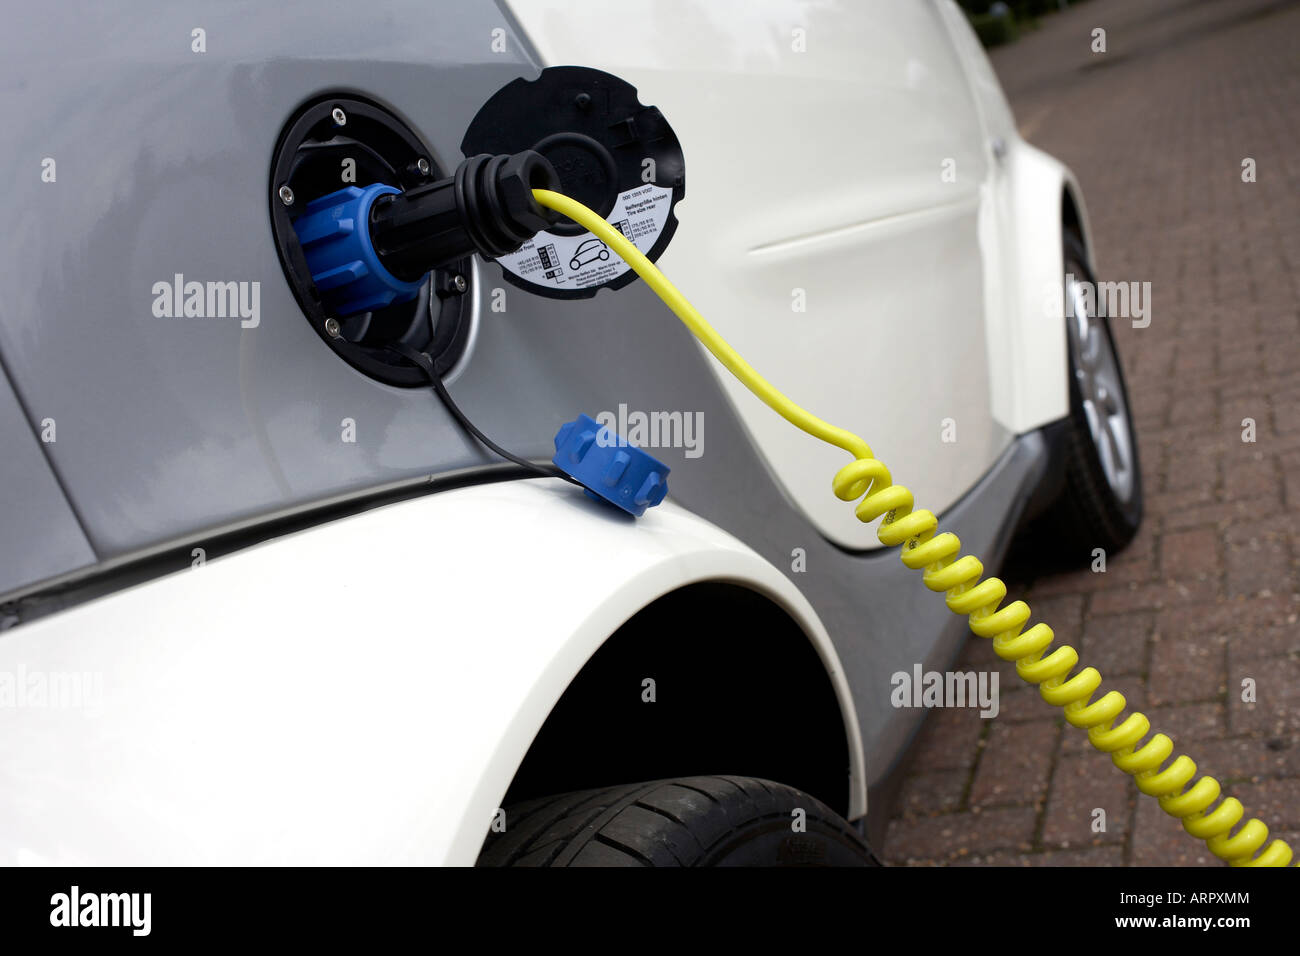 Re-charging an MHD Smart Car from mains electricity which powers its engine, an environmentally-green alternative Stock Photo